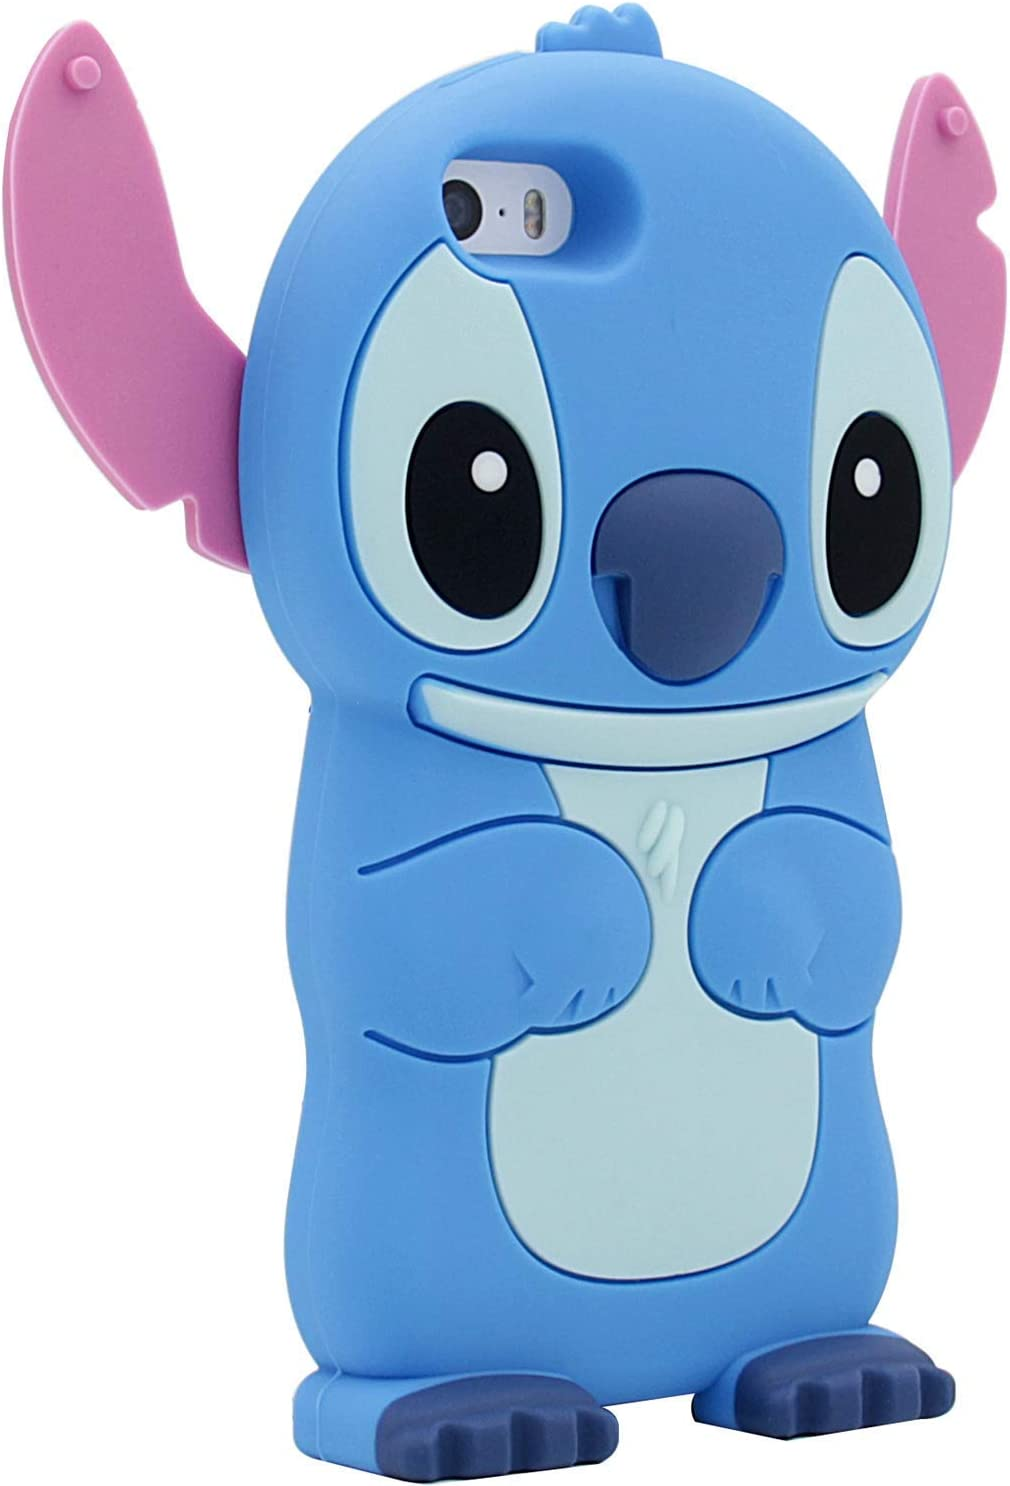 """Leosimp Blue Stitch Case for iPhone 8 Plus//7 Plus 5.5/"""" Cute 3D Cartoon Animal Cover,Kids Girls Boys Fun Cases Soft Silicone Gel Rubber Kawaii Character Protector Color Skin Cases for 8Plus"""